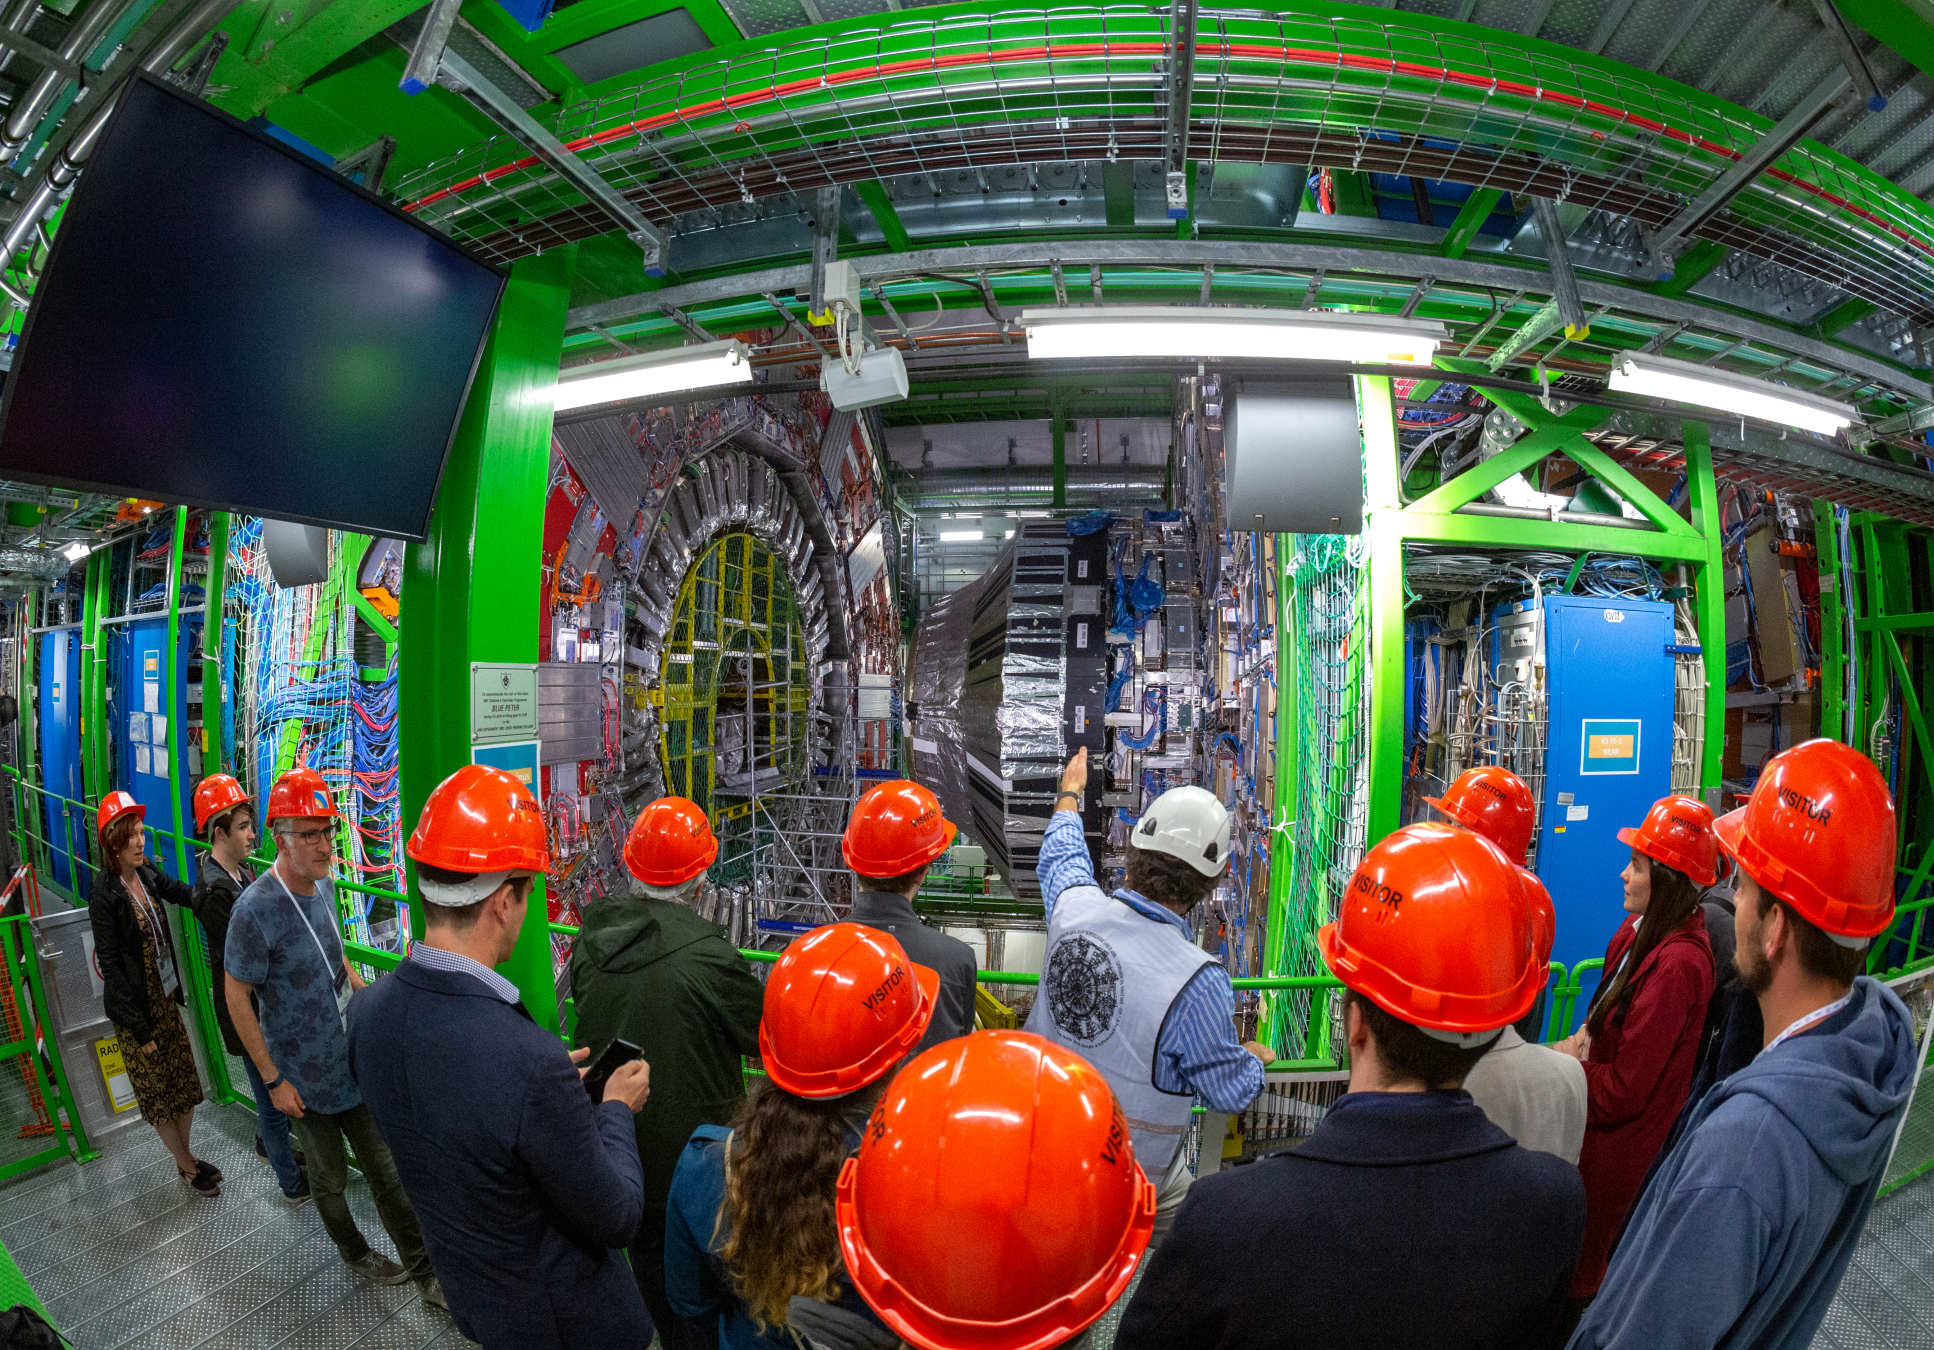 Alumni looking at the Large Hadron Collider